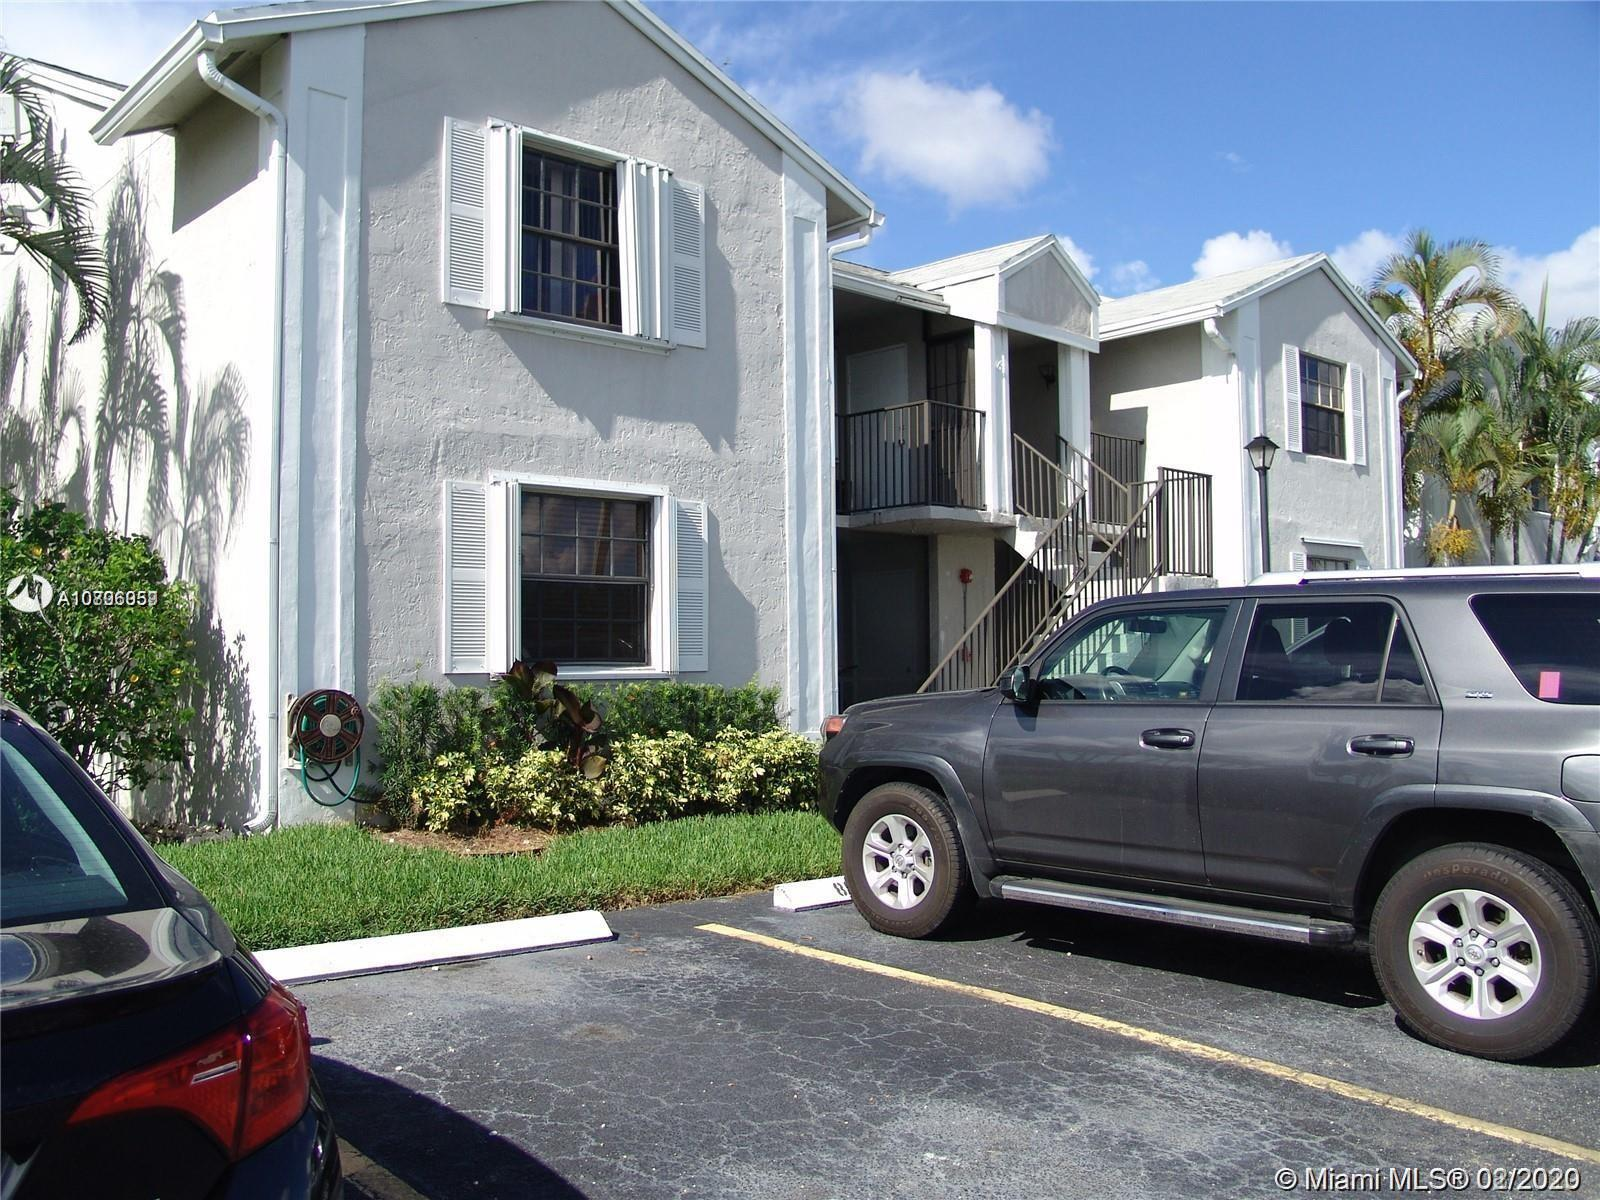 809 Hamilton Dr #809A, Homestead, FL 33034 - Homestead, FL real estate listing